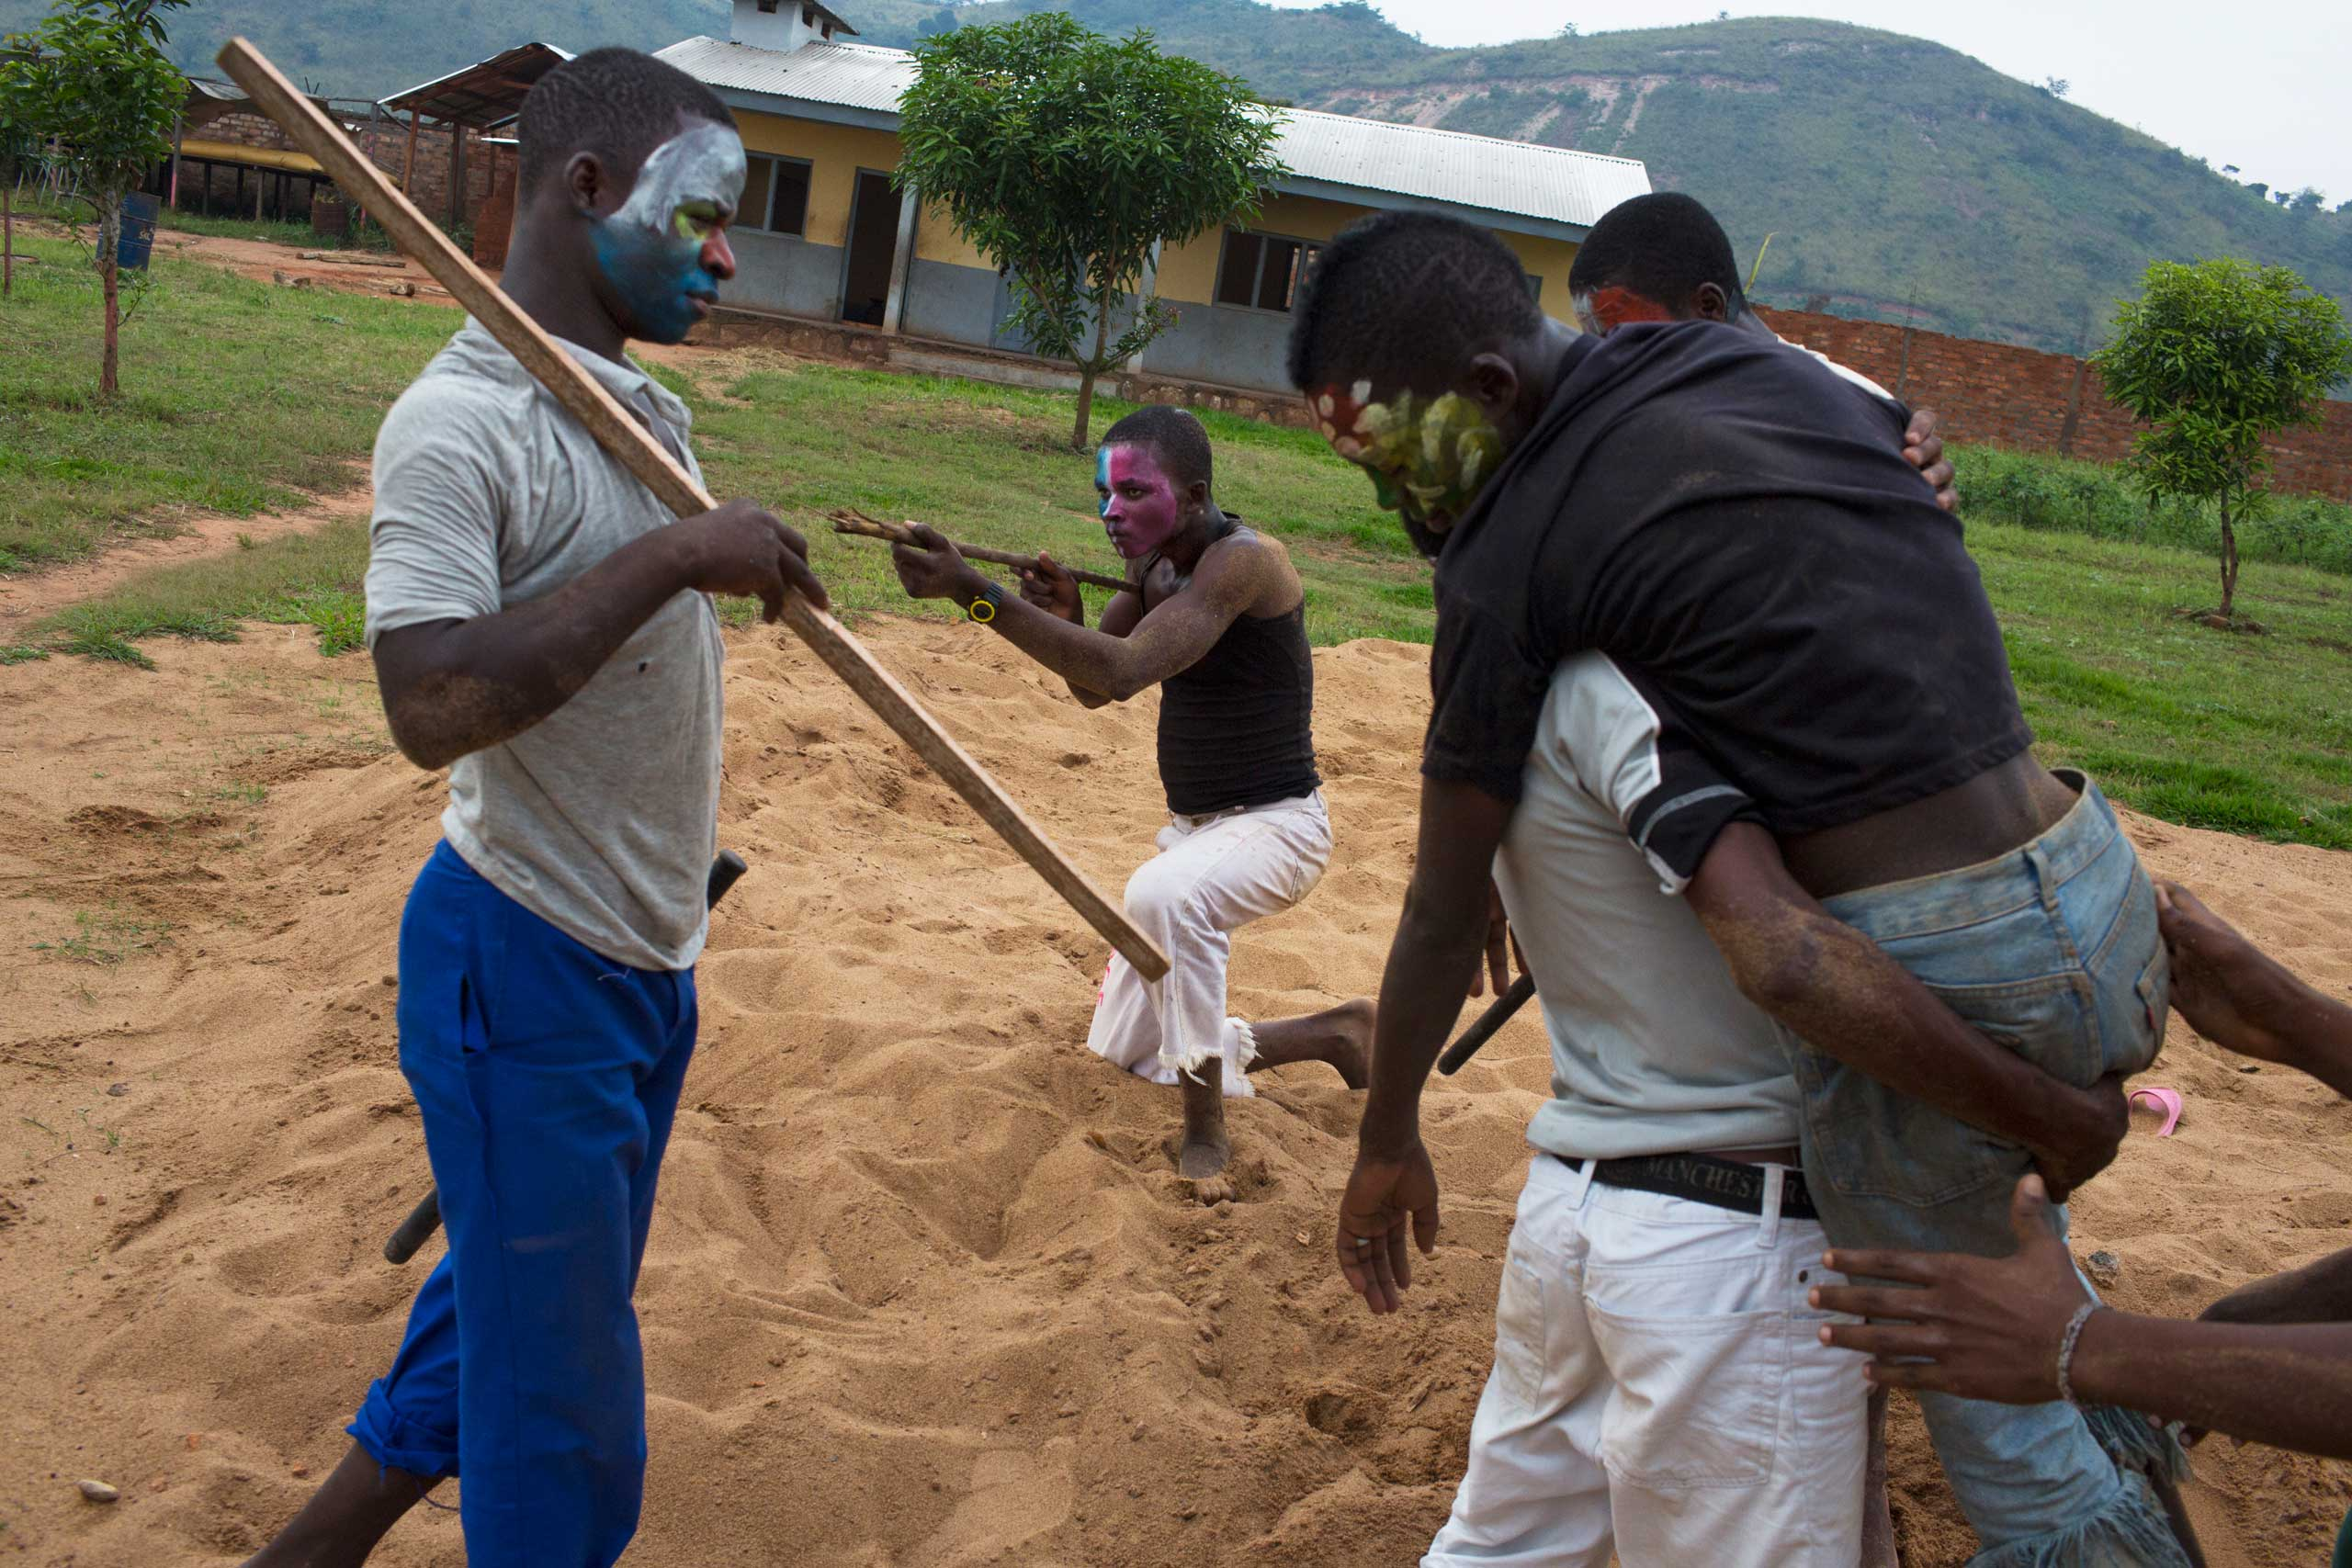 Former child soldiers play war games as part of their rehabilitation work. The UNICEF psychologist looking after them said such activities help them to deal with their past. Central African Republic. Dec. 3, 2013.                               Correction: The original version of this caption misstated the year the photograph was taken.